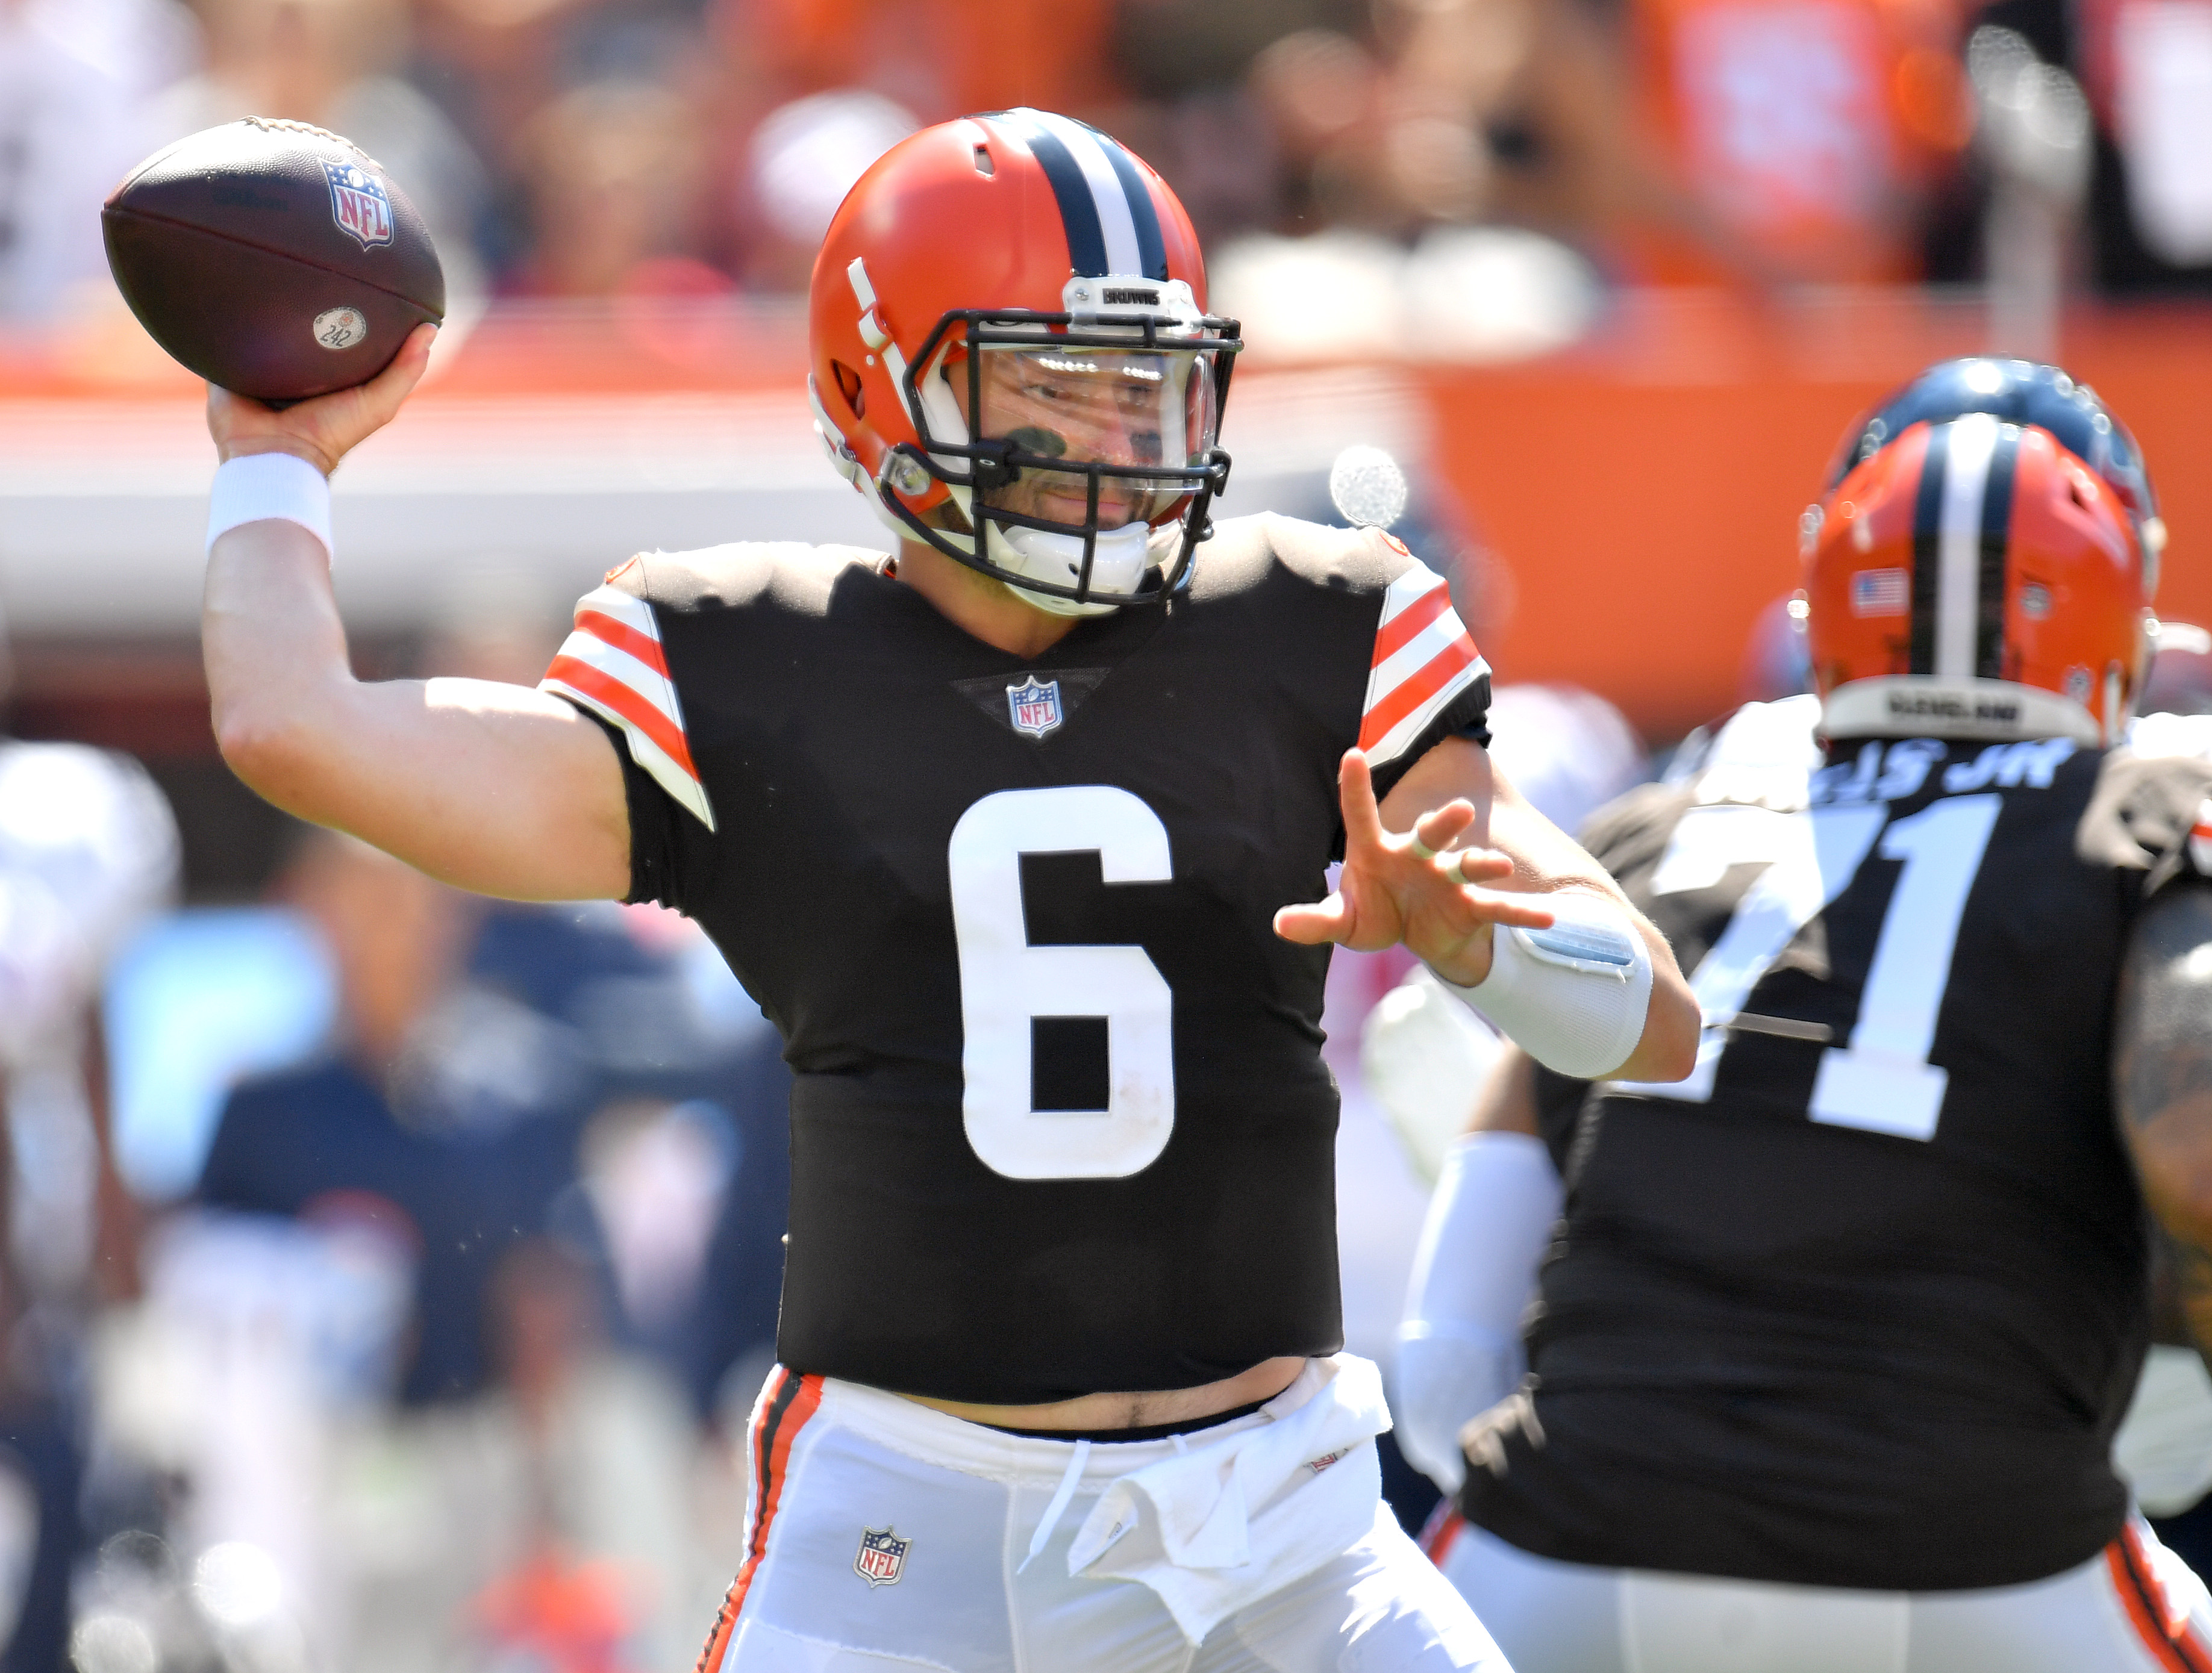 Quarterback Baker Mayfield #6 of the Cleveland Browns throws the ball during the first quarter in the game against the Houston Texans at FirstEnergy Stadium on September 19, 2021 in Cleveland, Ohio.